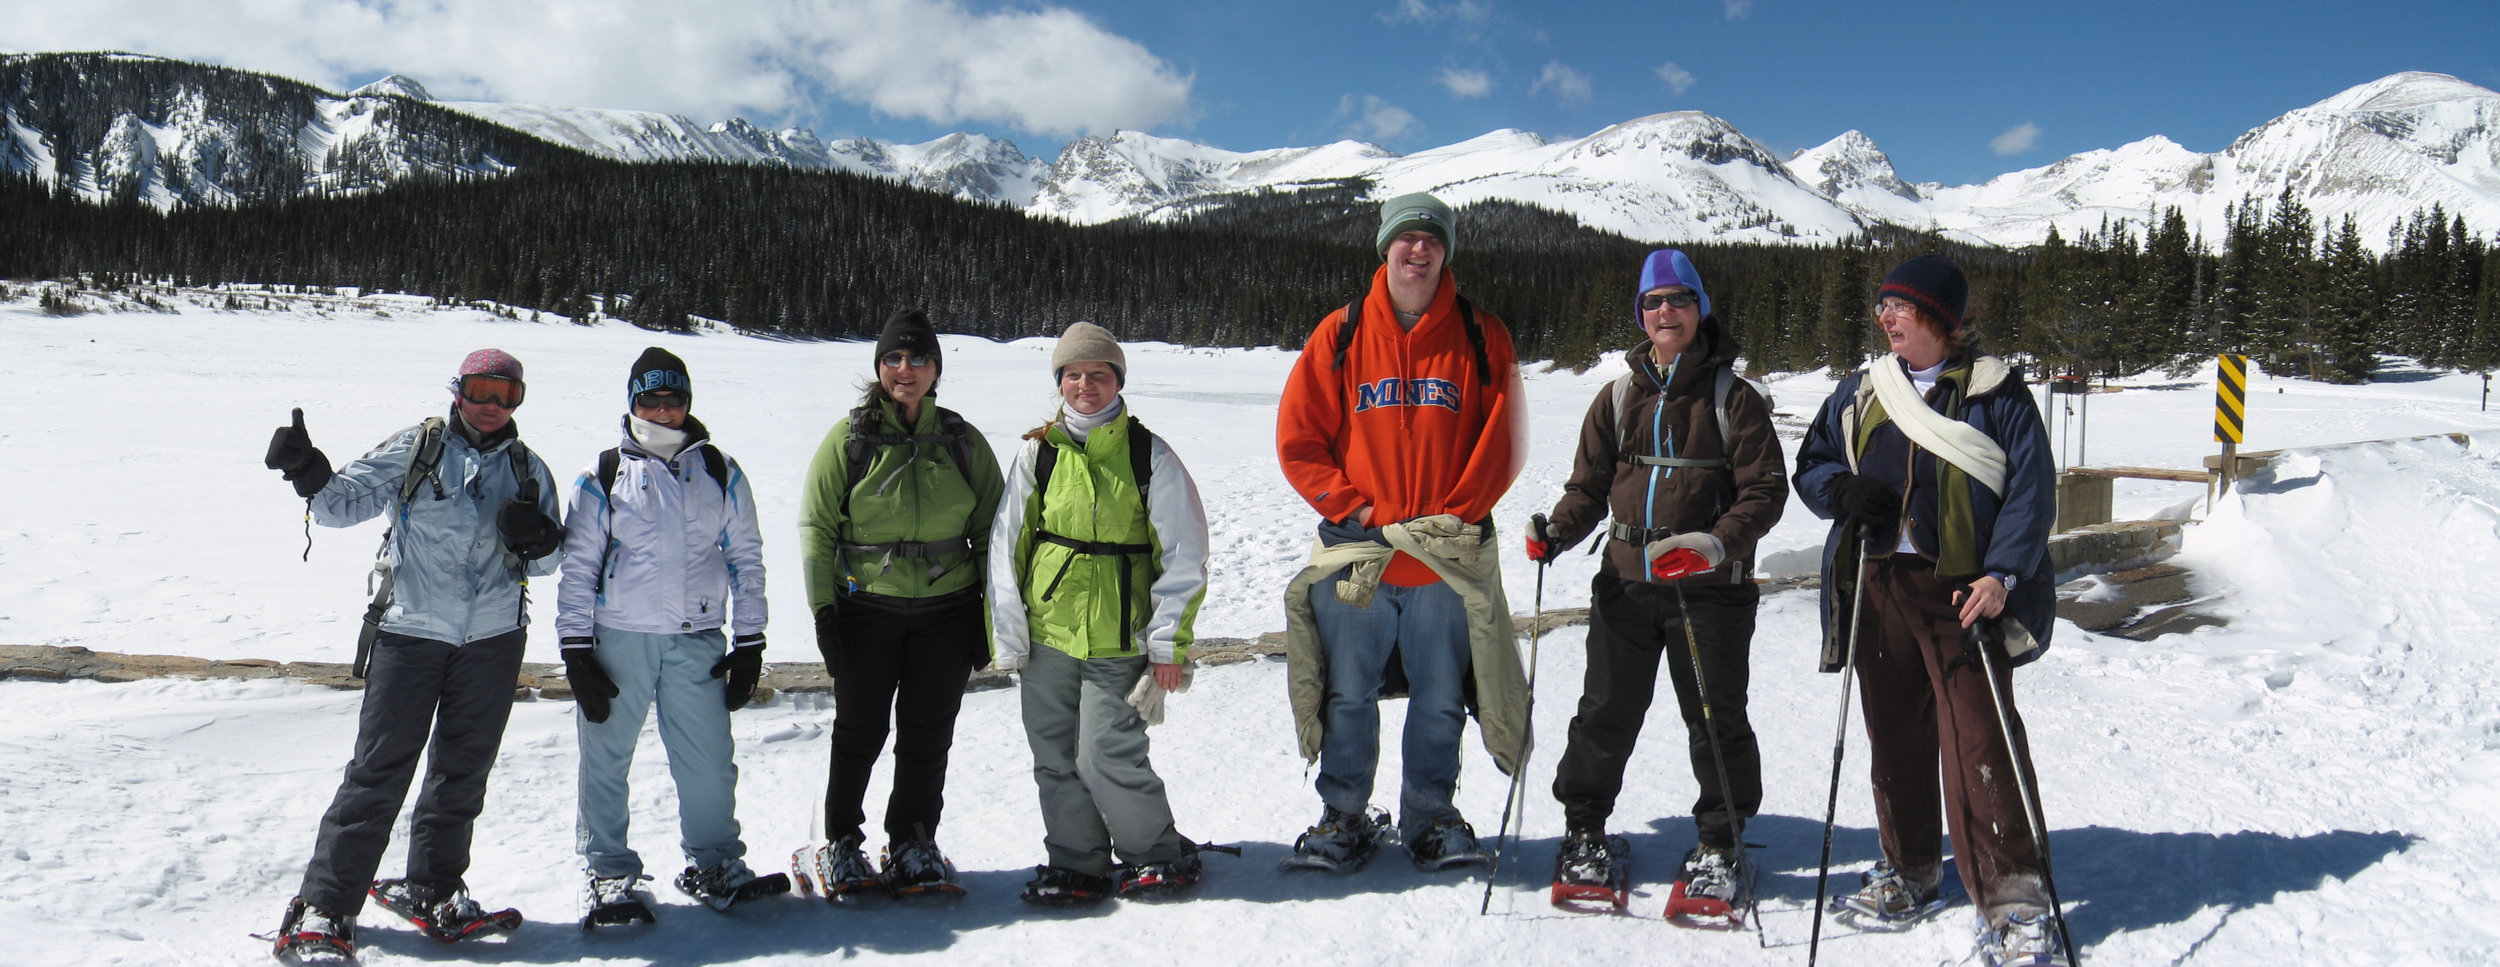 Brainard Lake snowshoe panorama_cropped.jpeg